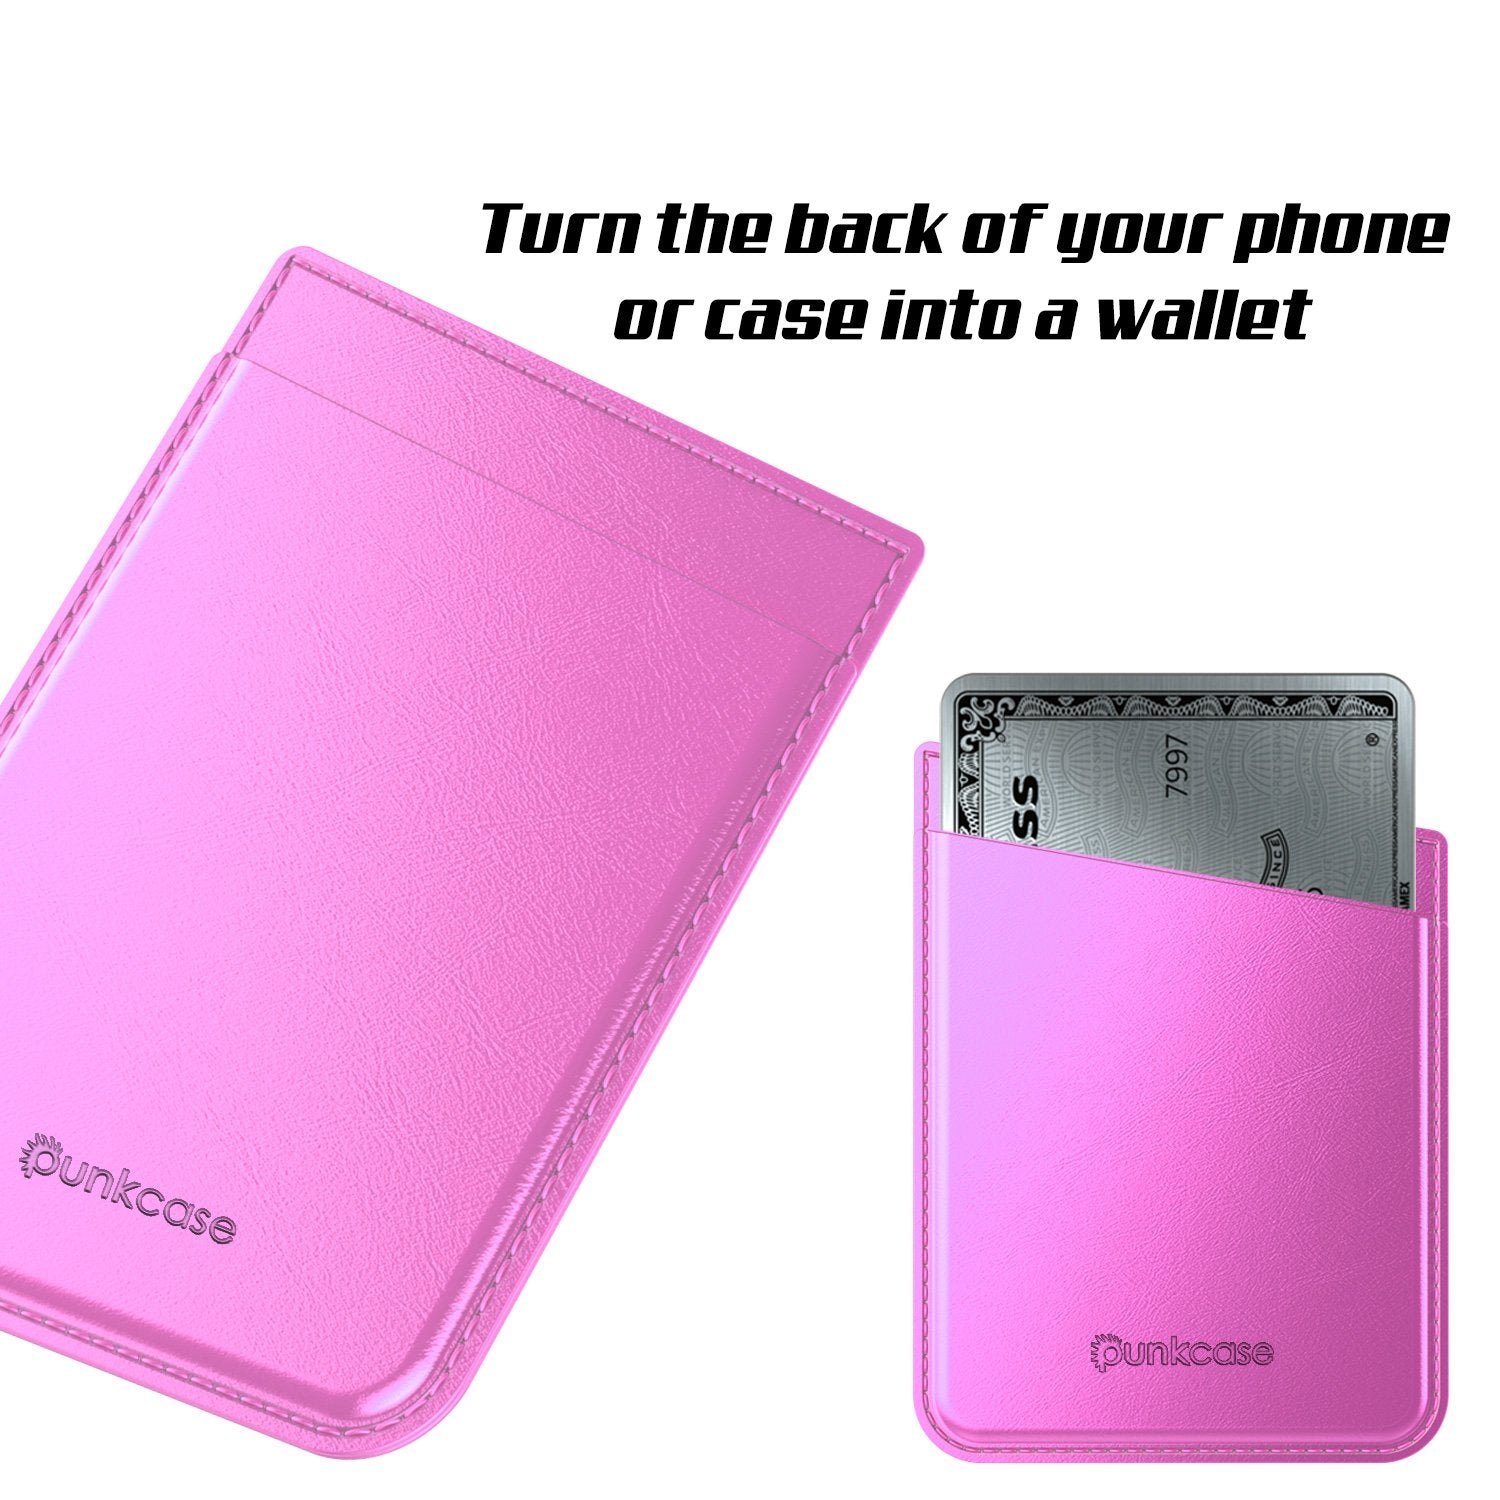 PunkCase CardStud Deluxe Stick On Wallet | Adhesive Card Holder Attachment for Back of iPhone, Android & More | Leather Pouch | [Pink]